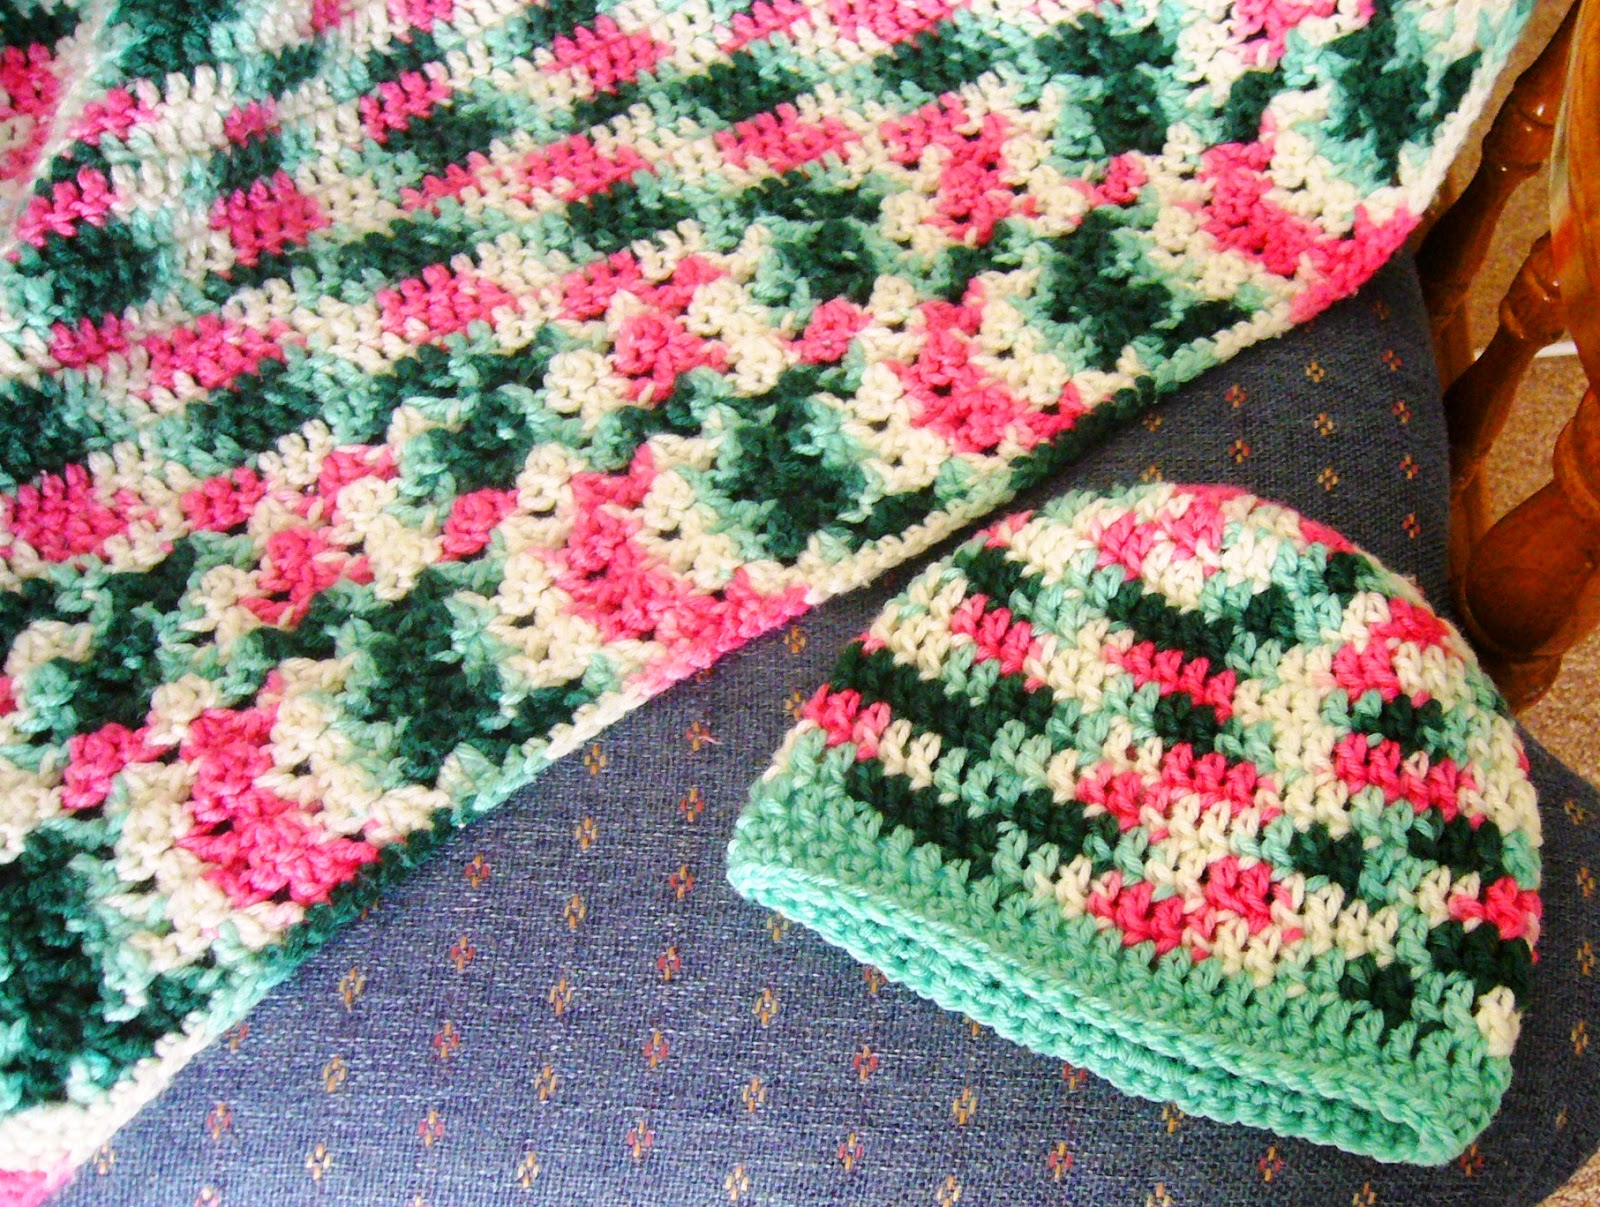 Crocheting for Operation Christmas Child Shoe Boxes